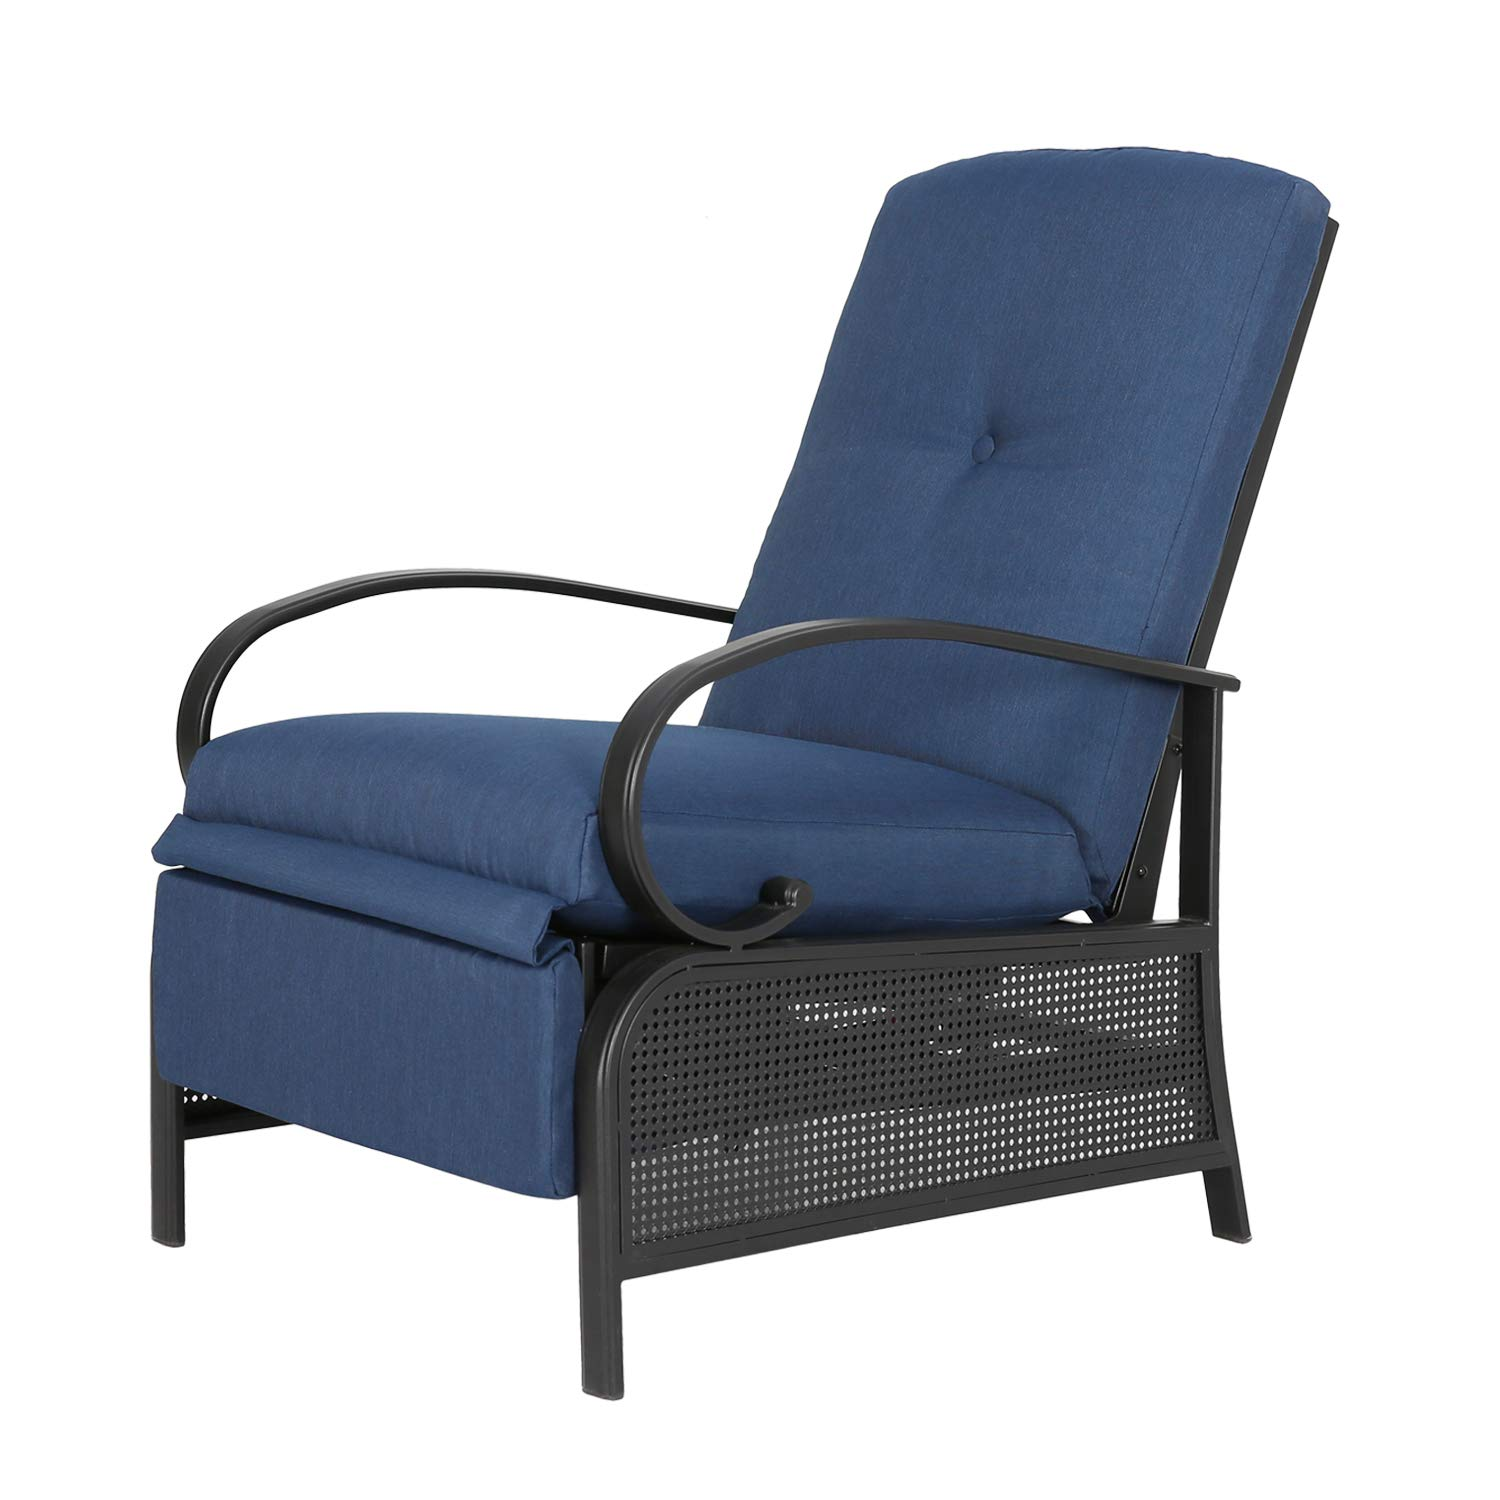 Ulax Furniture Patio Recliner Chair Automatic Adjustable Back Outdoor Lounge Chair with 100 Olefin Cushion Navy Blue